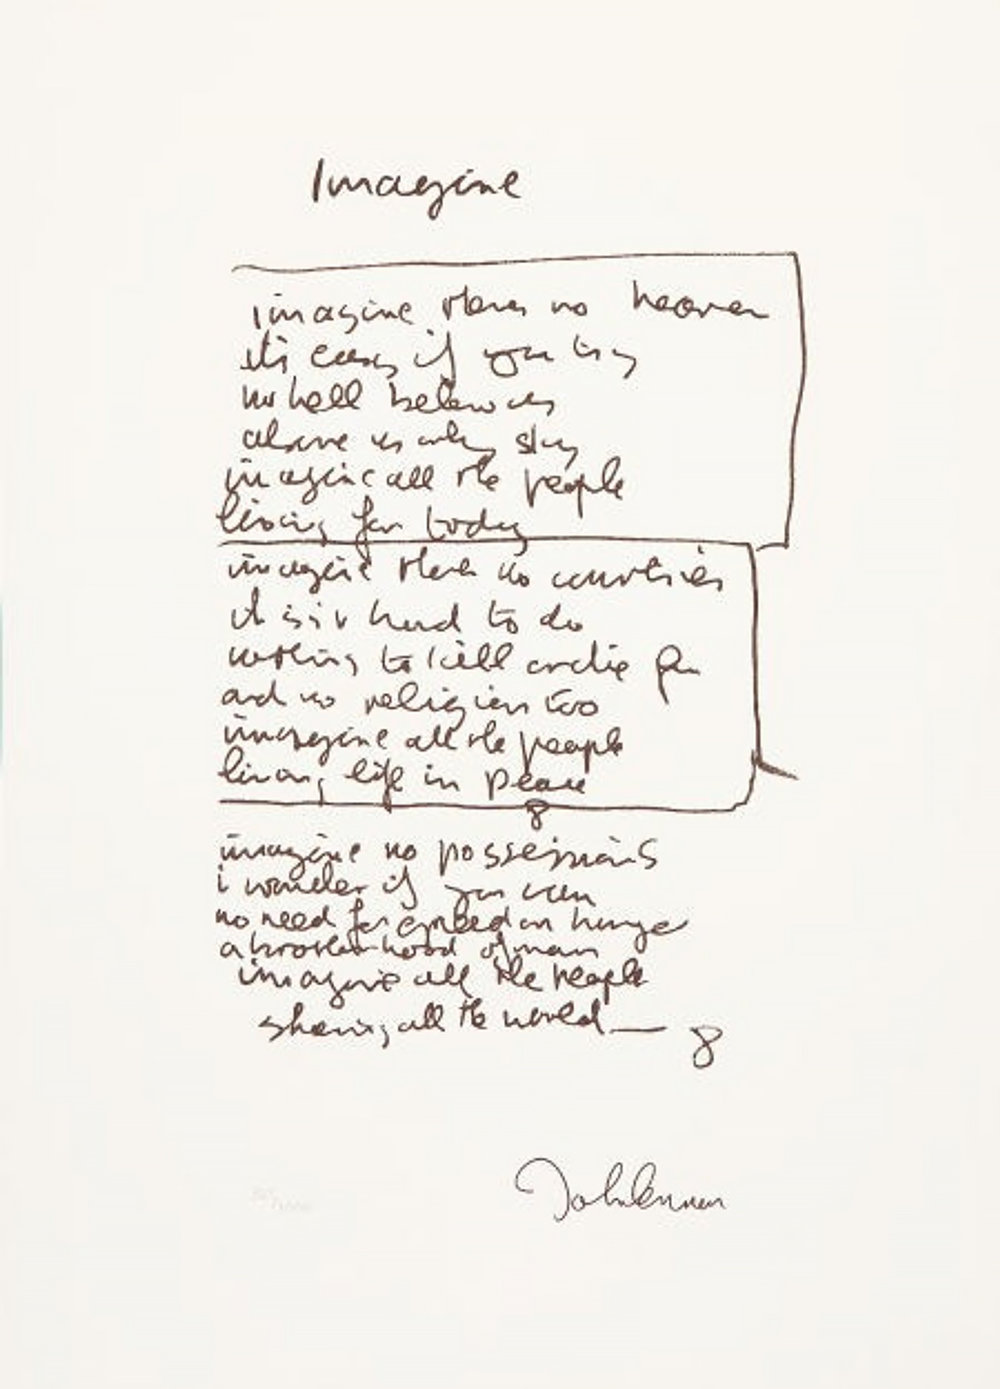 JOHN LENNON  Imagine, 1971 Ink on paper  Lennon composed the song sitting before his Steinway for a mere few hours one morning, leaving only two stanzas to be completed later on.  Imagine there's no heaven It's easy if you try No hell below us Above us only sky Imagine all the people living for today  Imagine there's no countries It isn't hard to do Nothing to kill or die for And no religion too Imagine all the people living life in peace  Imagine no possessions I wonder if you can No need for greed or hunger A brotherhood of man Imagine all the people sharing all the world, you  You may say I'm a dreamer But I'm not the only one I hope some day you'll join us And the world will be as one   LEARN MORE  →